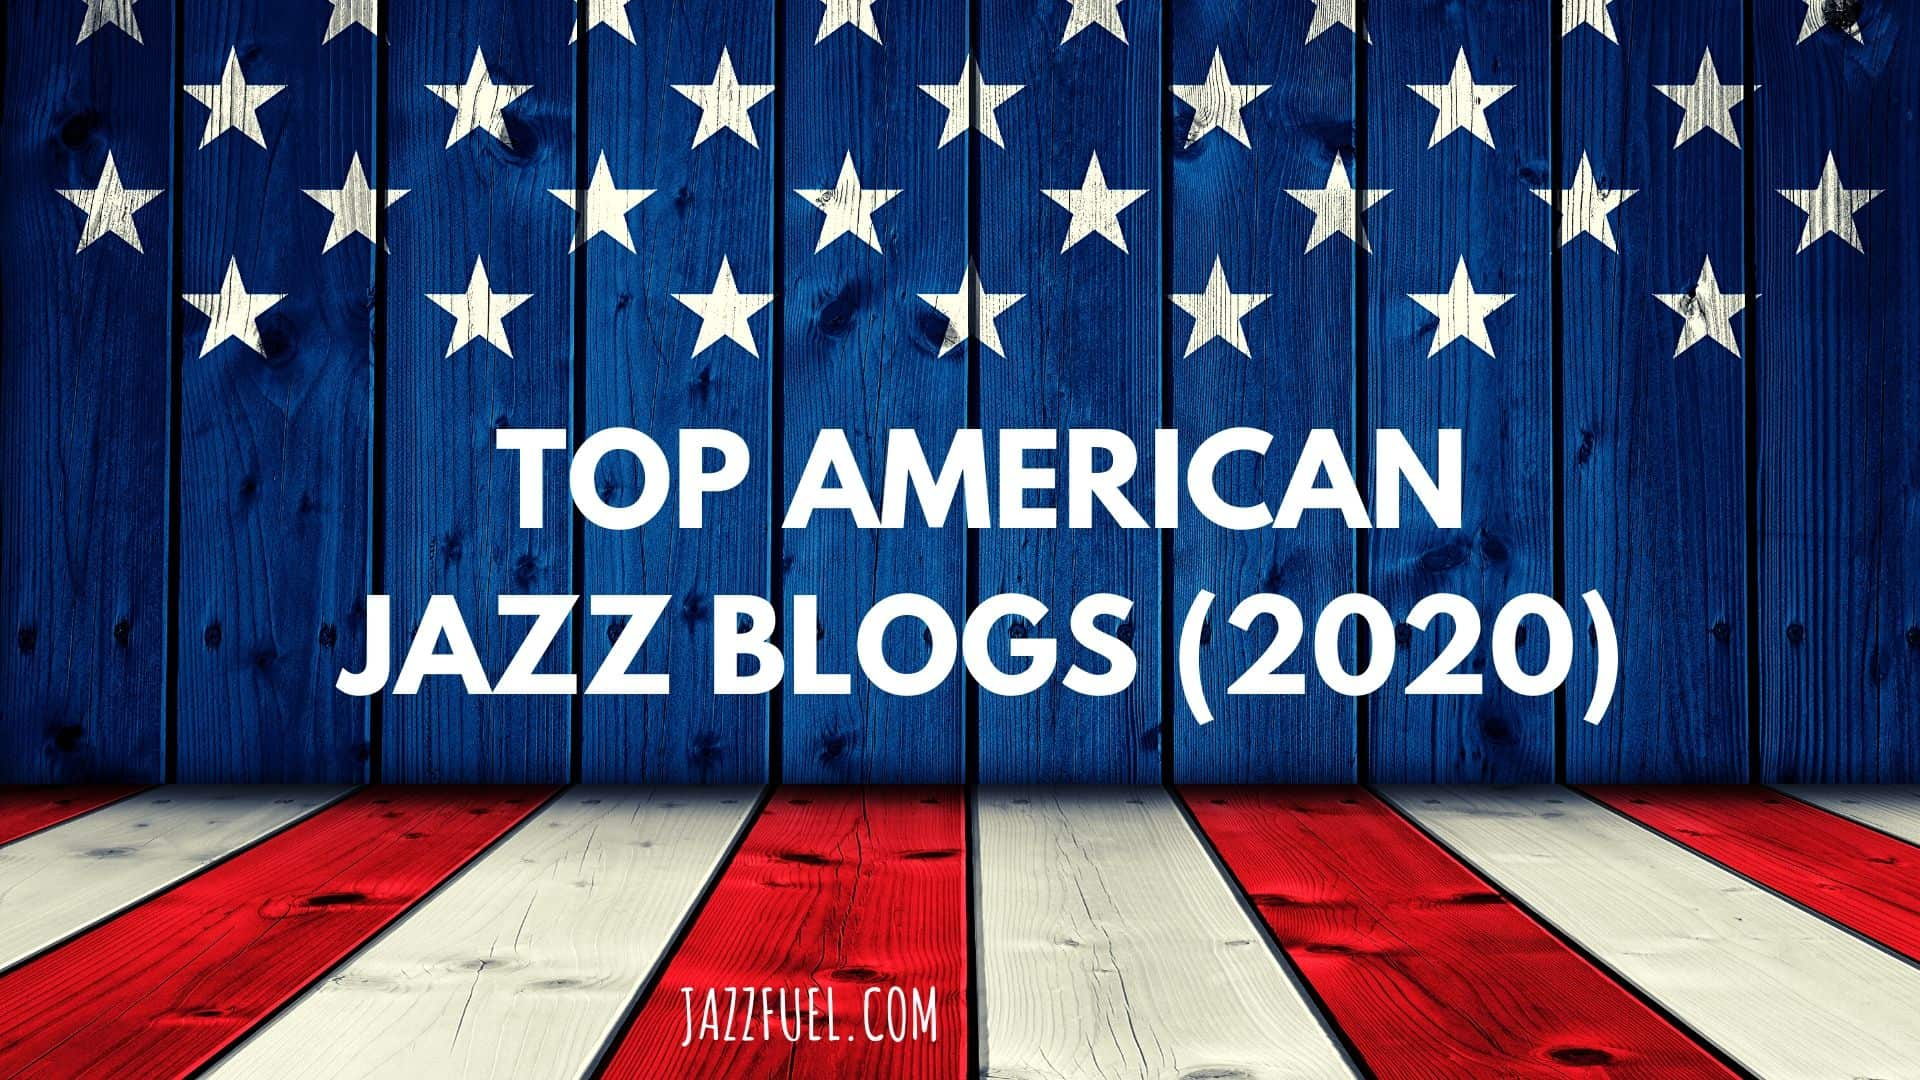 American jazz blogs